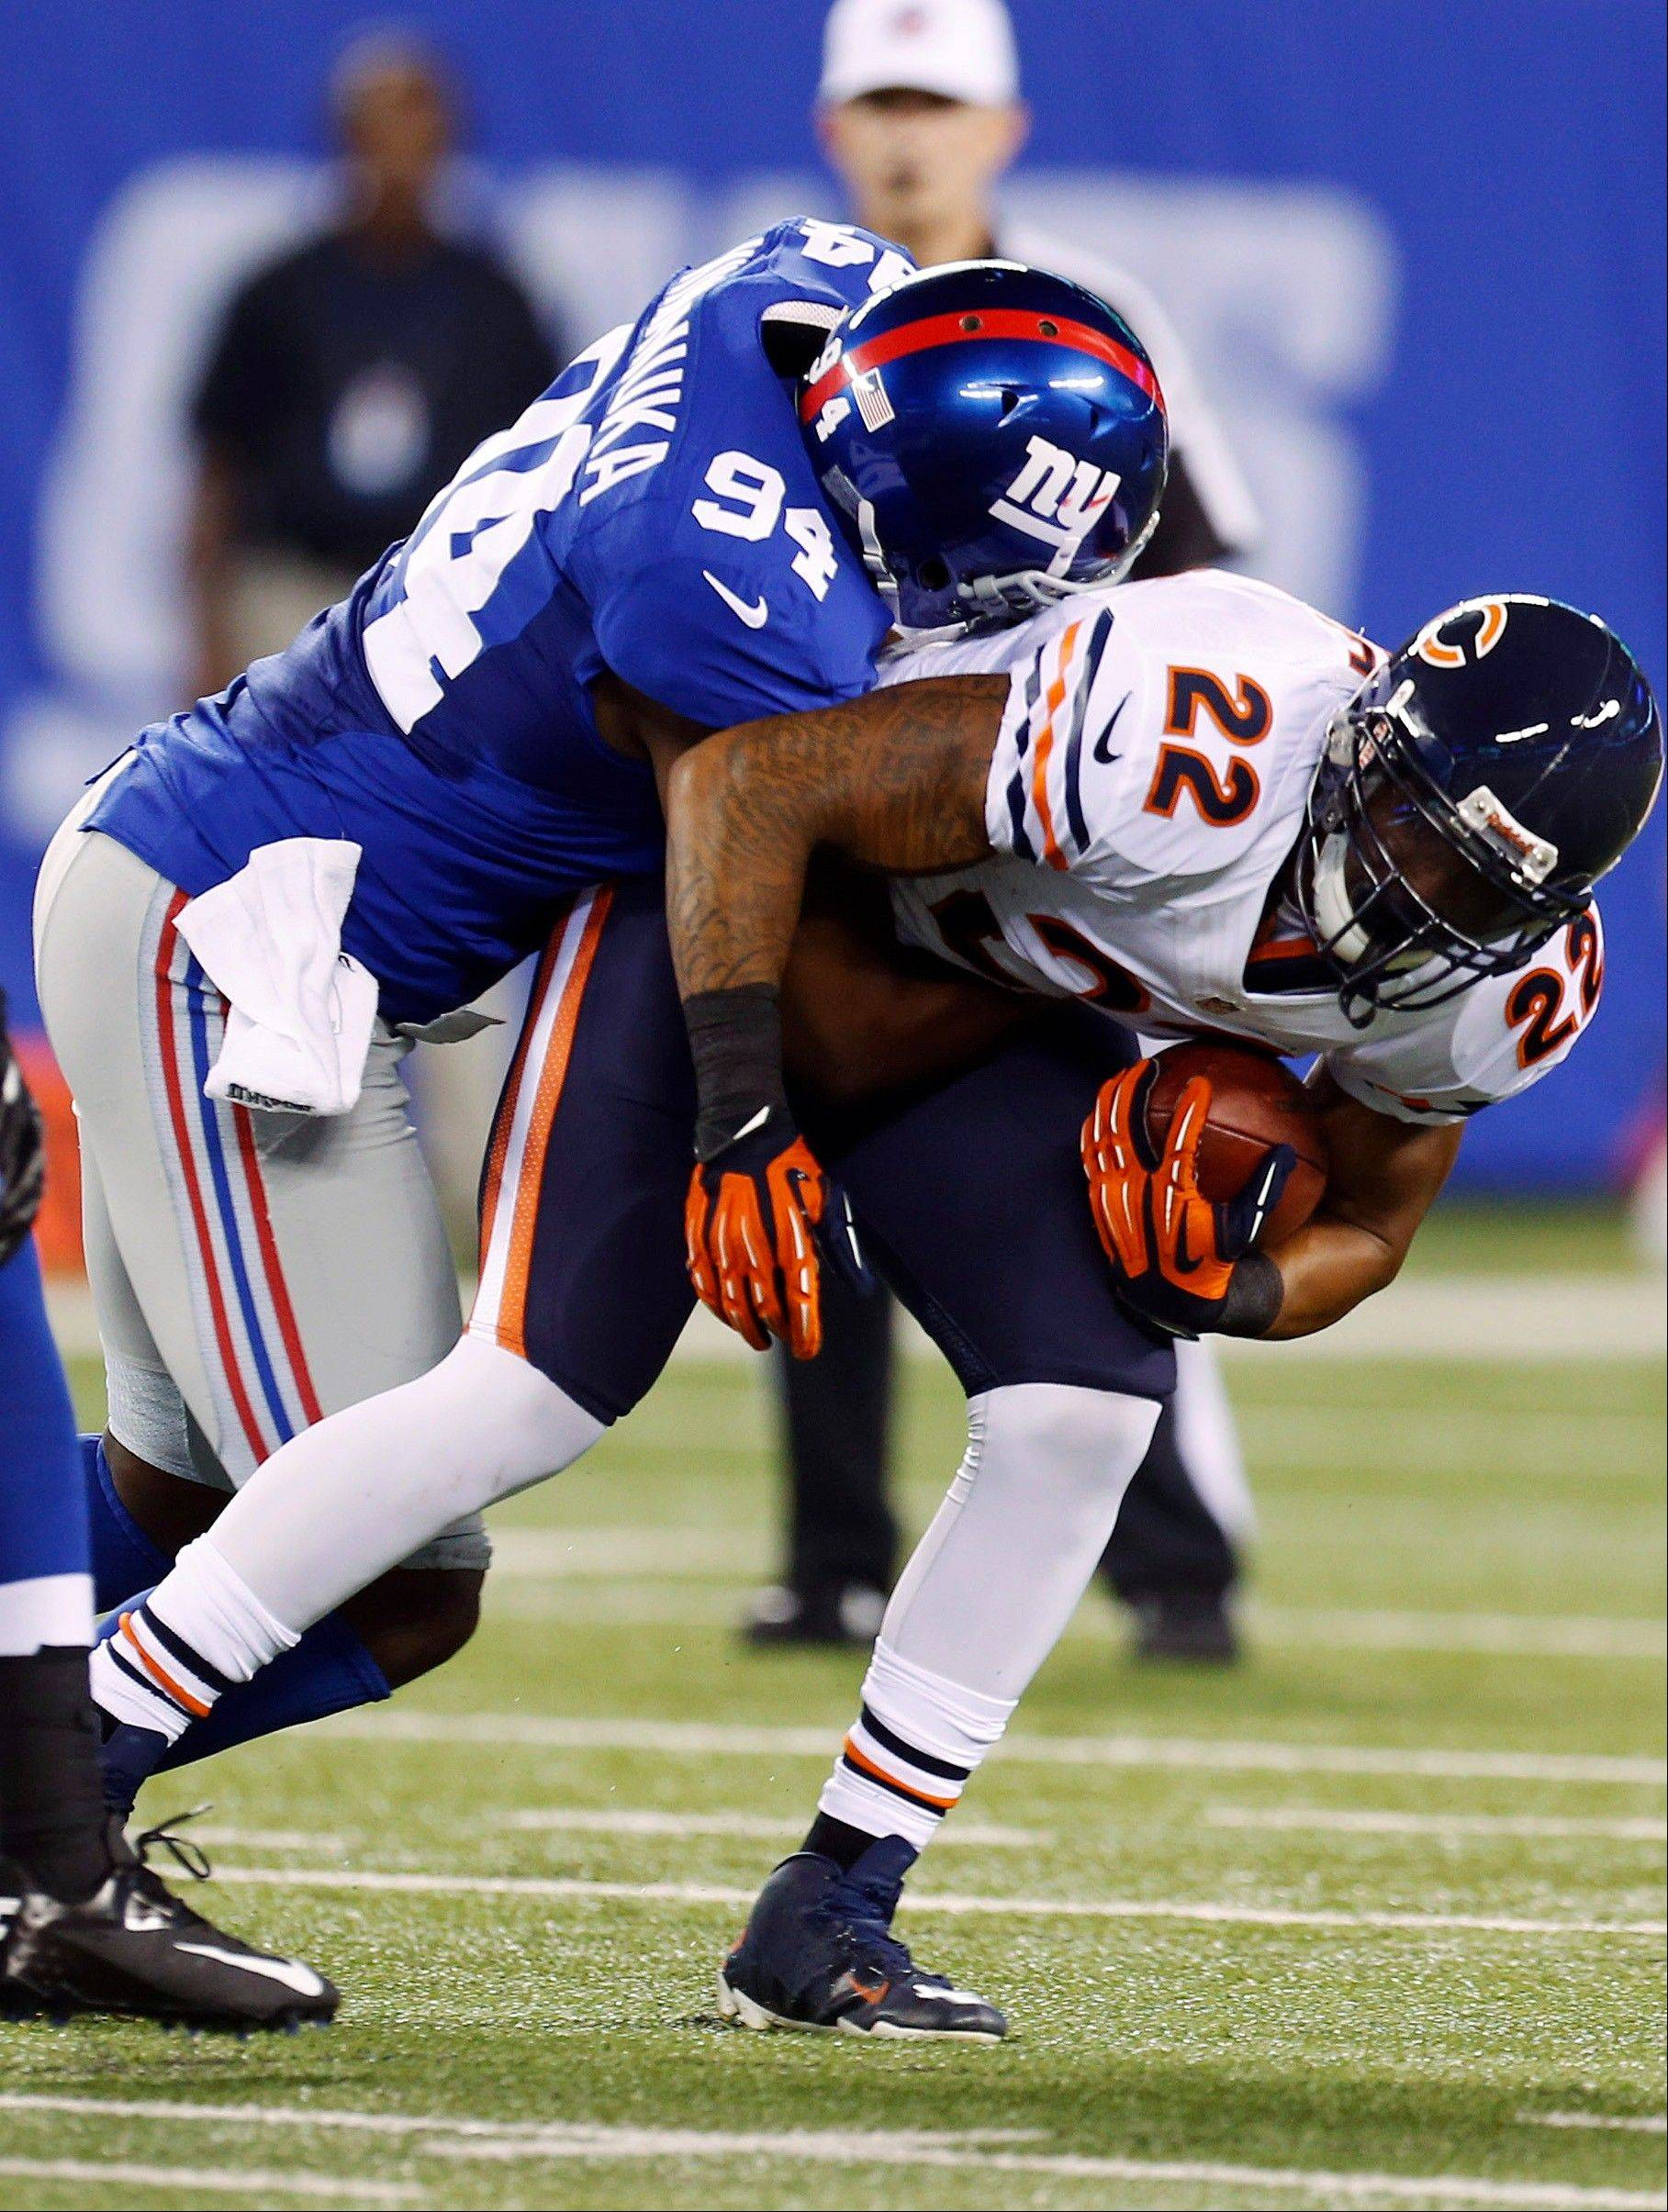 Matt Forte is tackled by New York Giants linebacker Mathias Kiwanuka (94) during the first half of an NFL preseason football game Friday, Aug. 24, 2012, in East Rutherford, N.J.